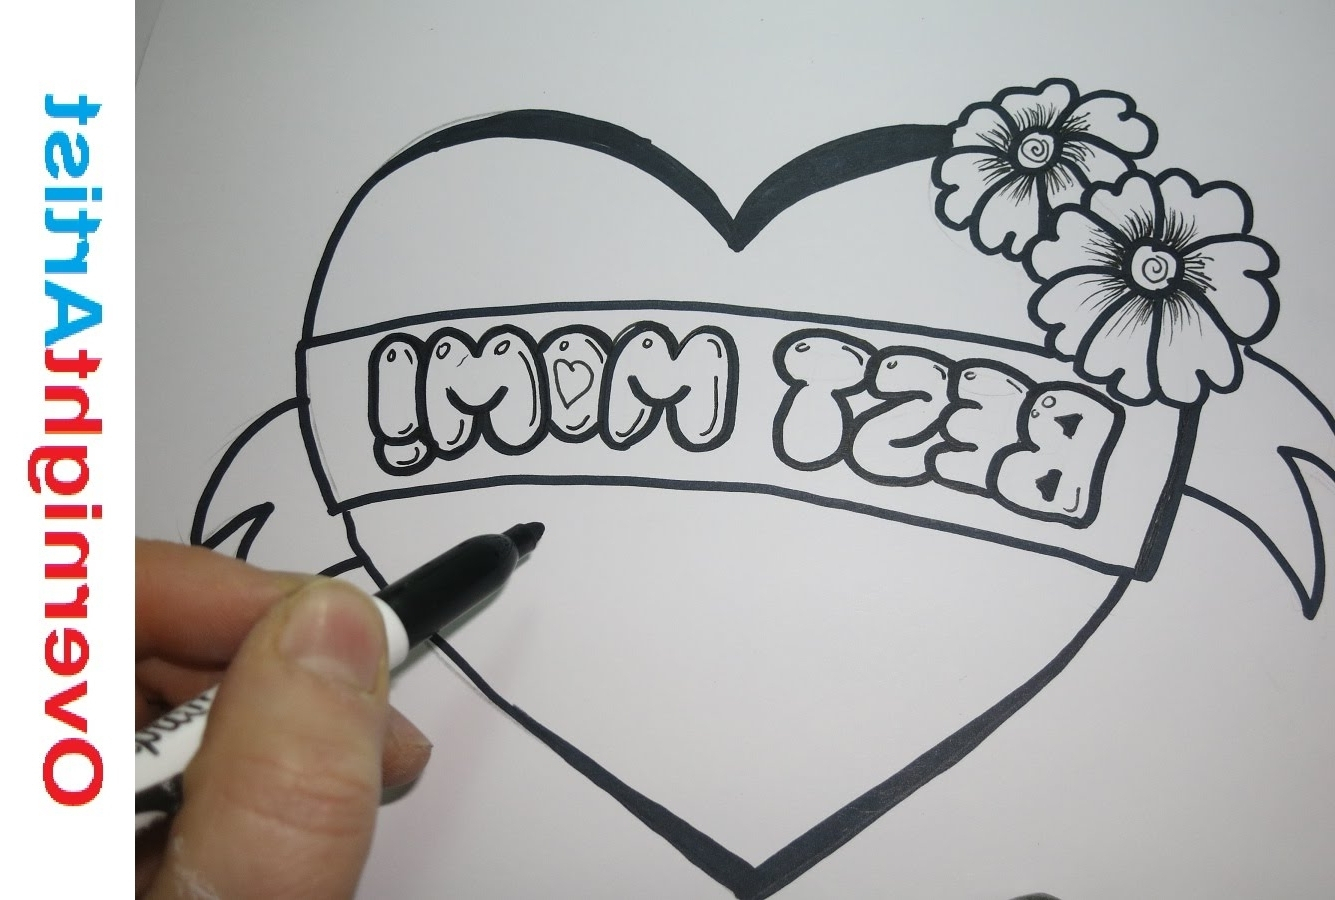 drawing ideas for mom's birthday ; how-to-draw-mom-in-graffiti-birthday-drawing-ideas-drawing-and-sketches